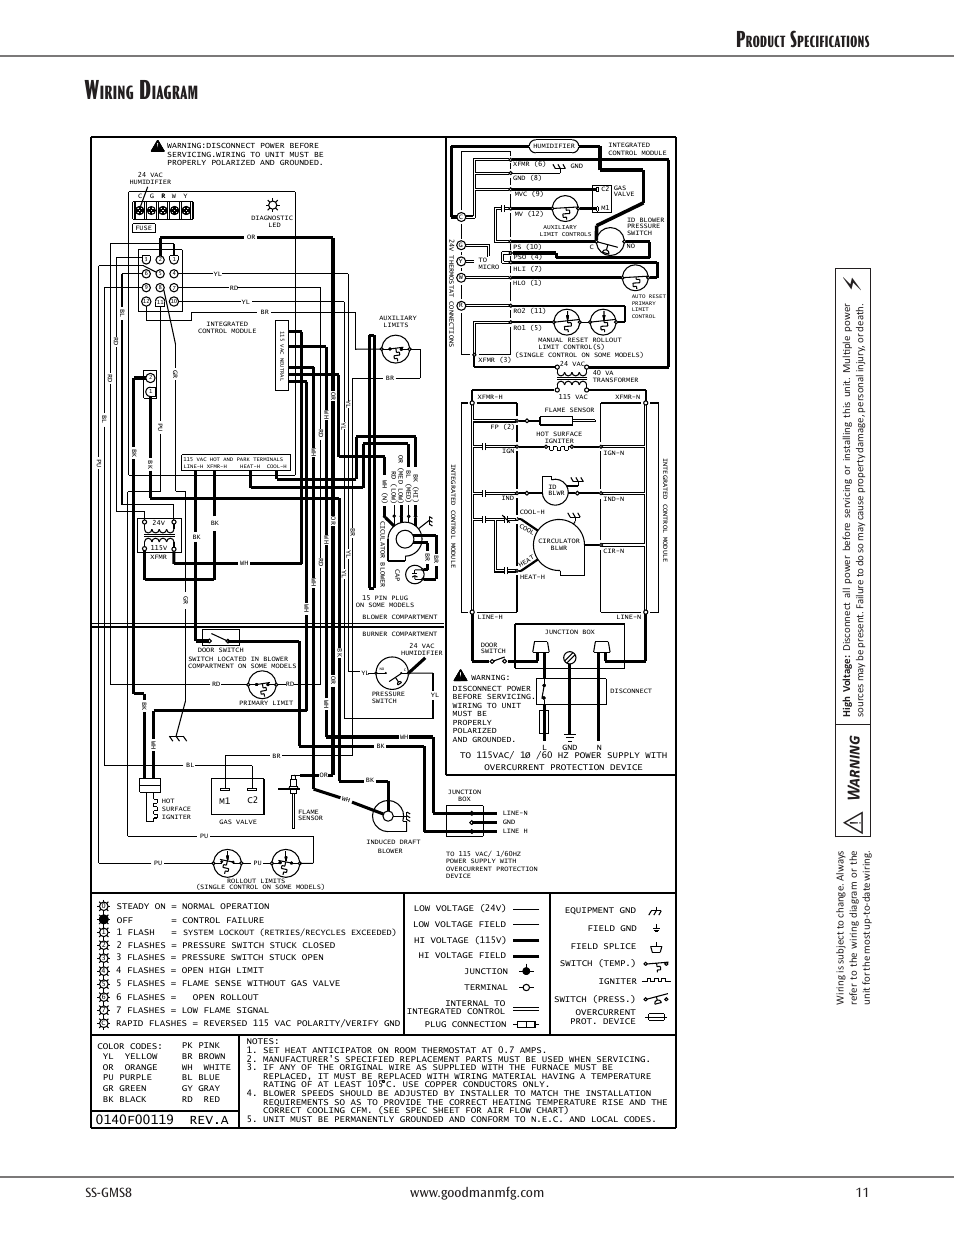 Iring Iagram Warning Goodman Mfg Gds8 User Manual Page 11 12 Manufacturing Wiring Diagrams Thermostat